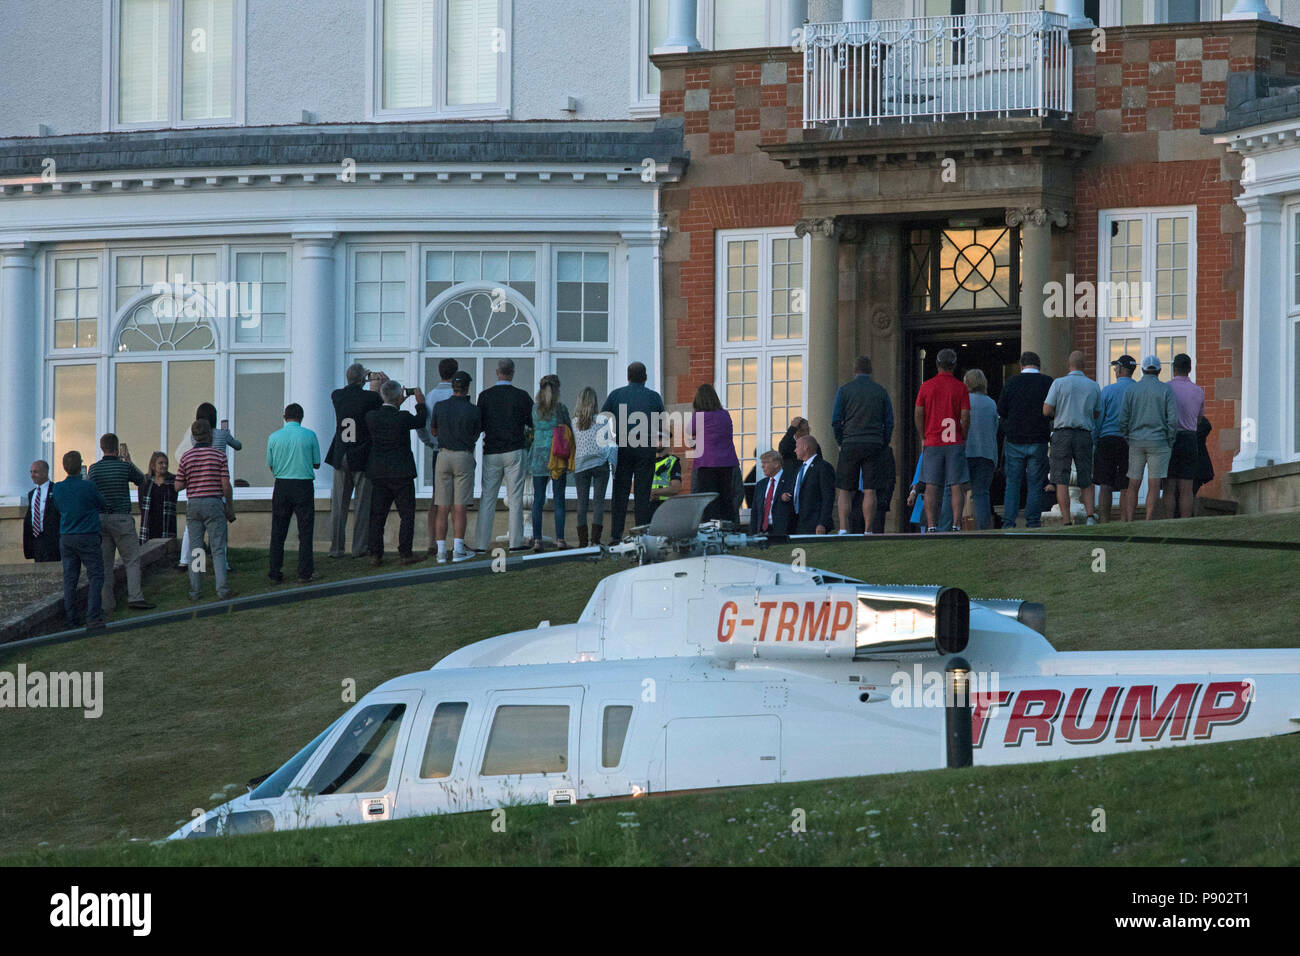 US President Donald Trump greets hotel guests after arriving at the Trump Turnberry resort in South Ayrshire, where he is expected to stay over the weekend. Stock Photo